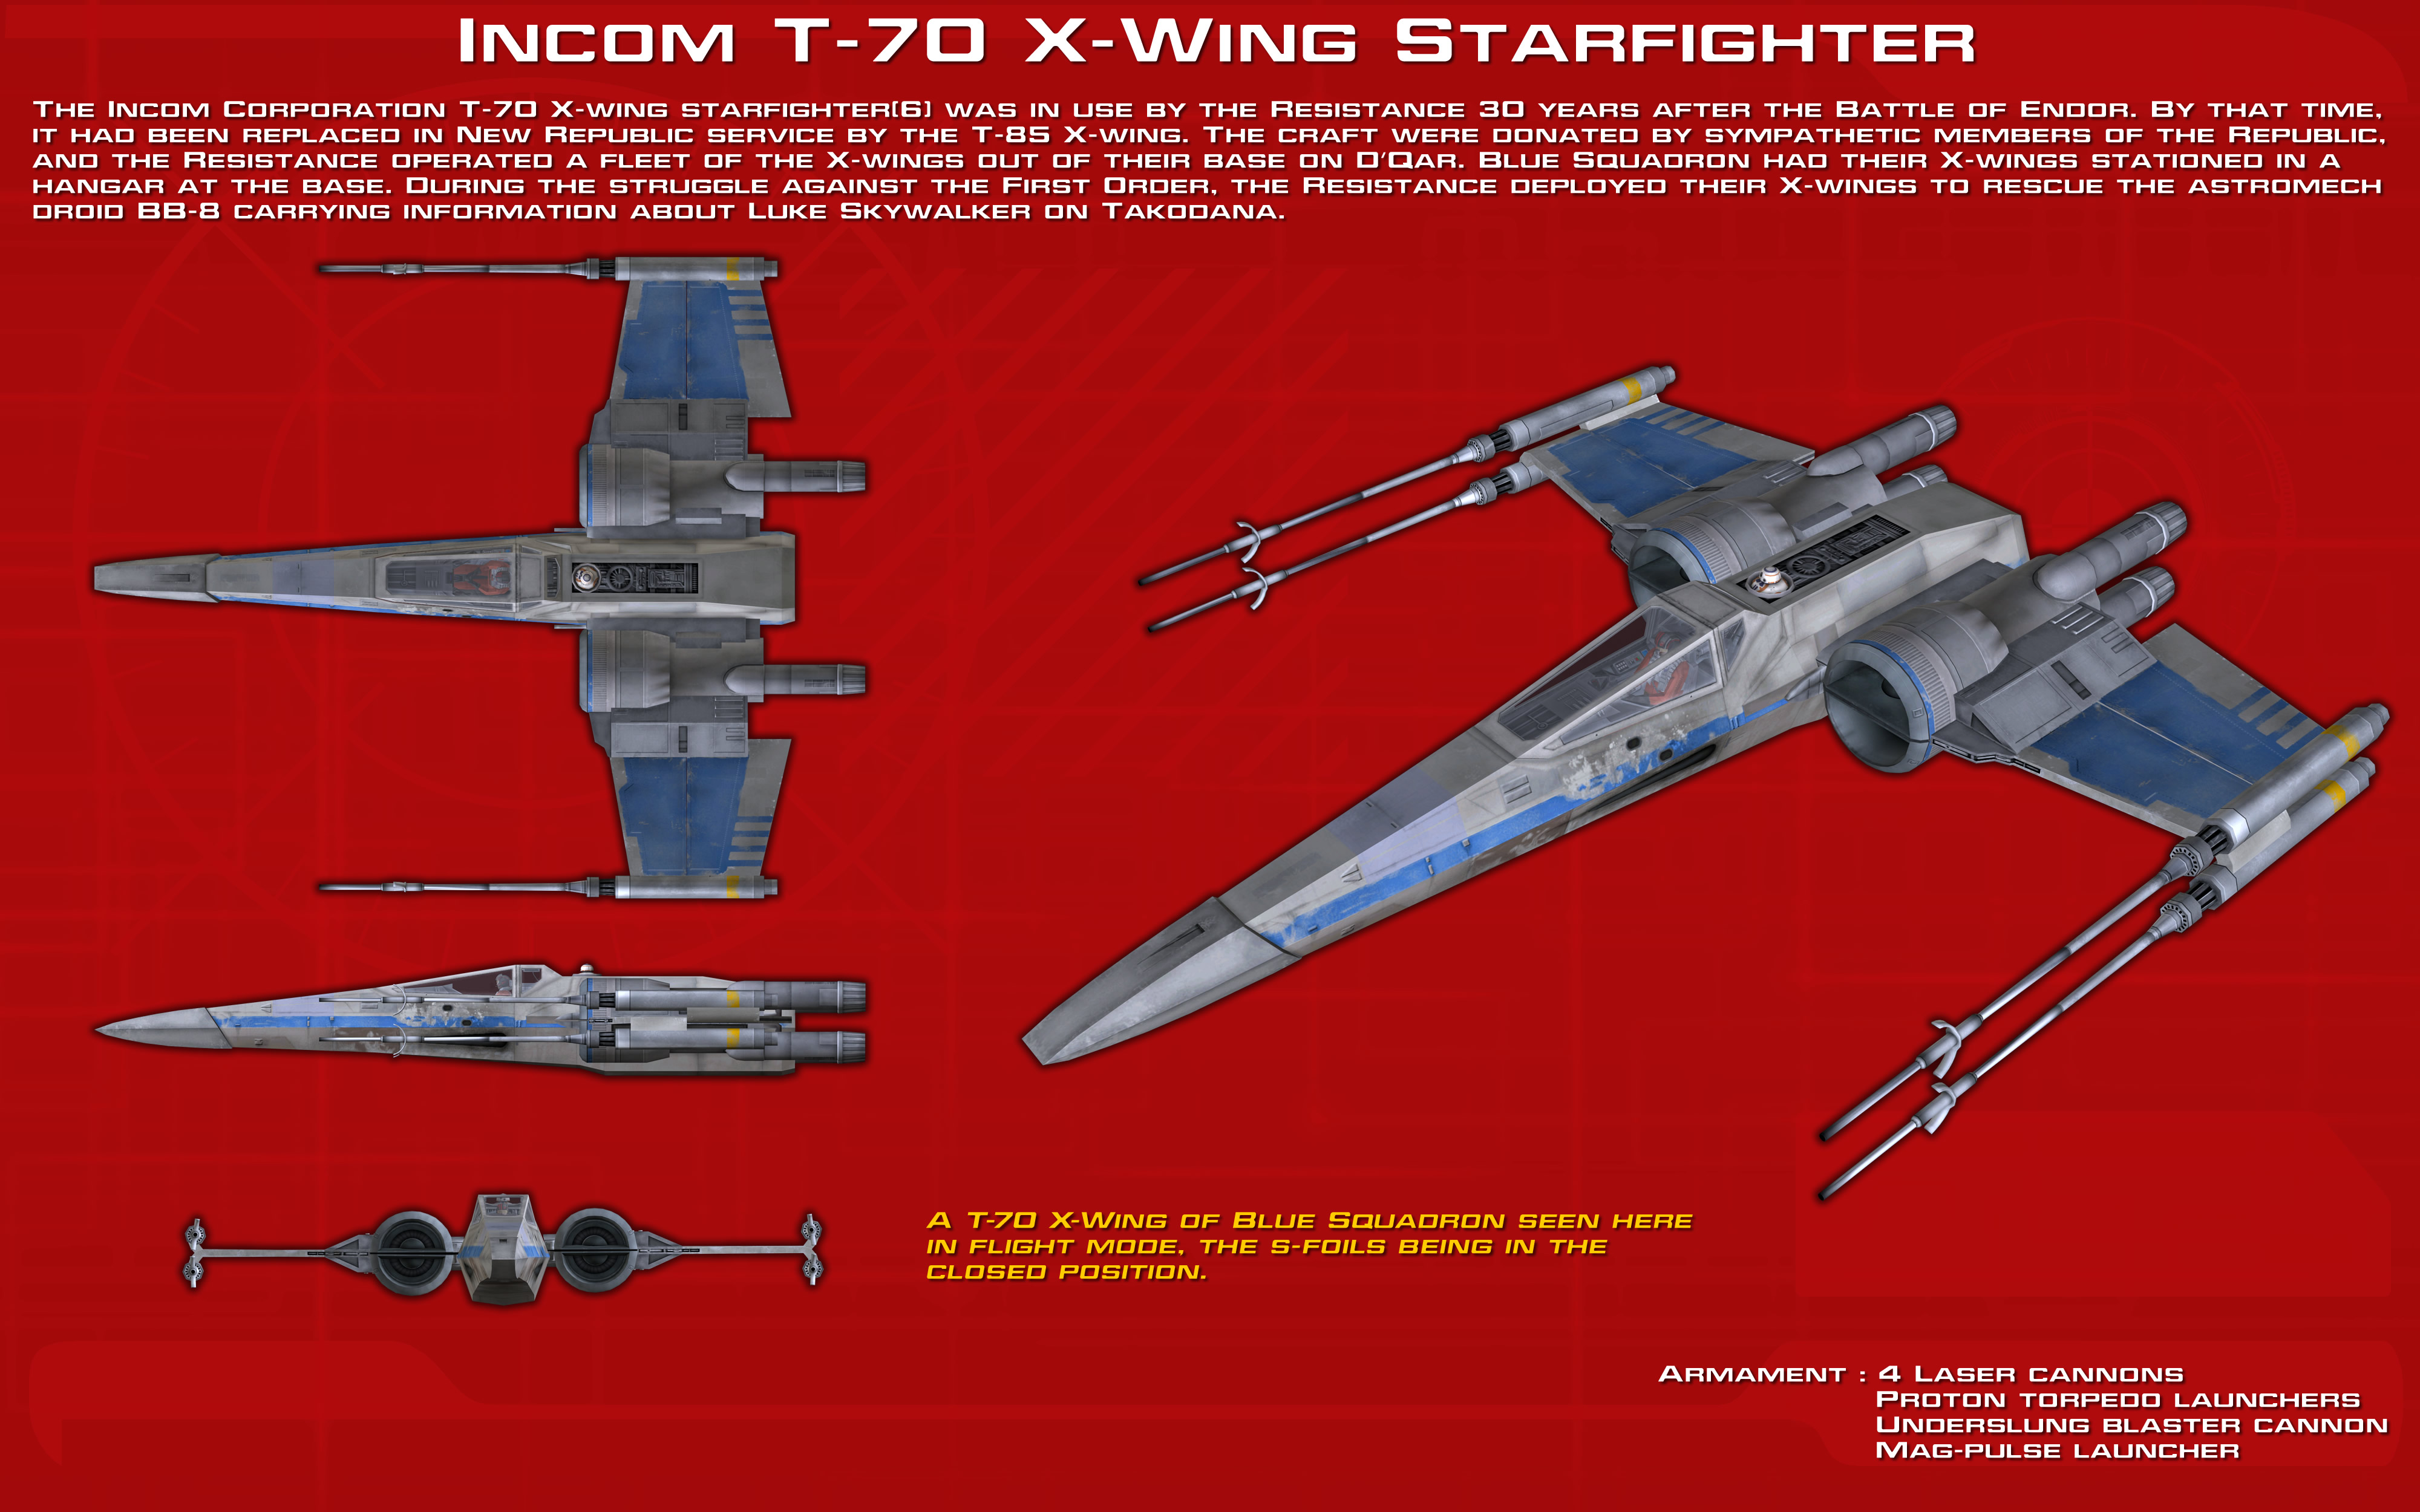 Incom T-70 X-Wing Starfighter ortho [2][Update] by ... on